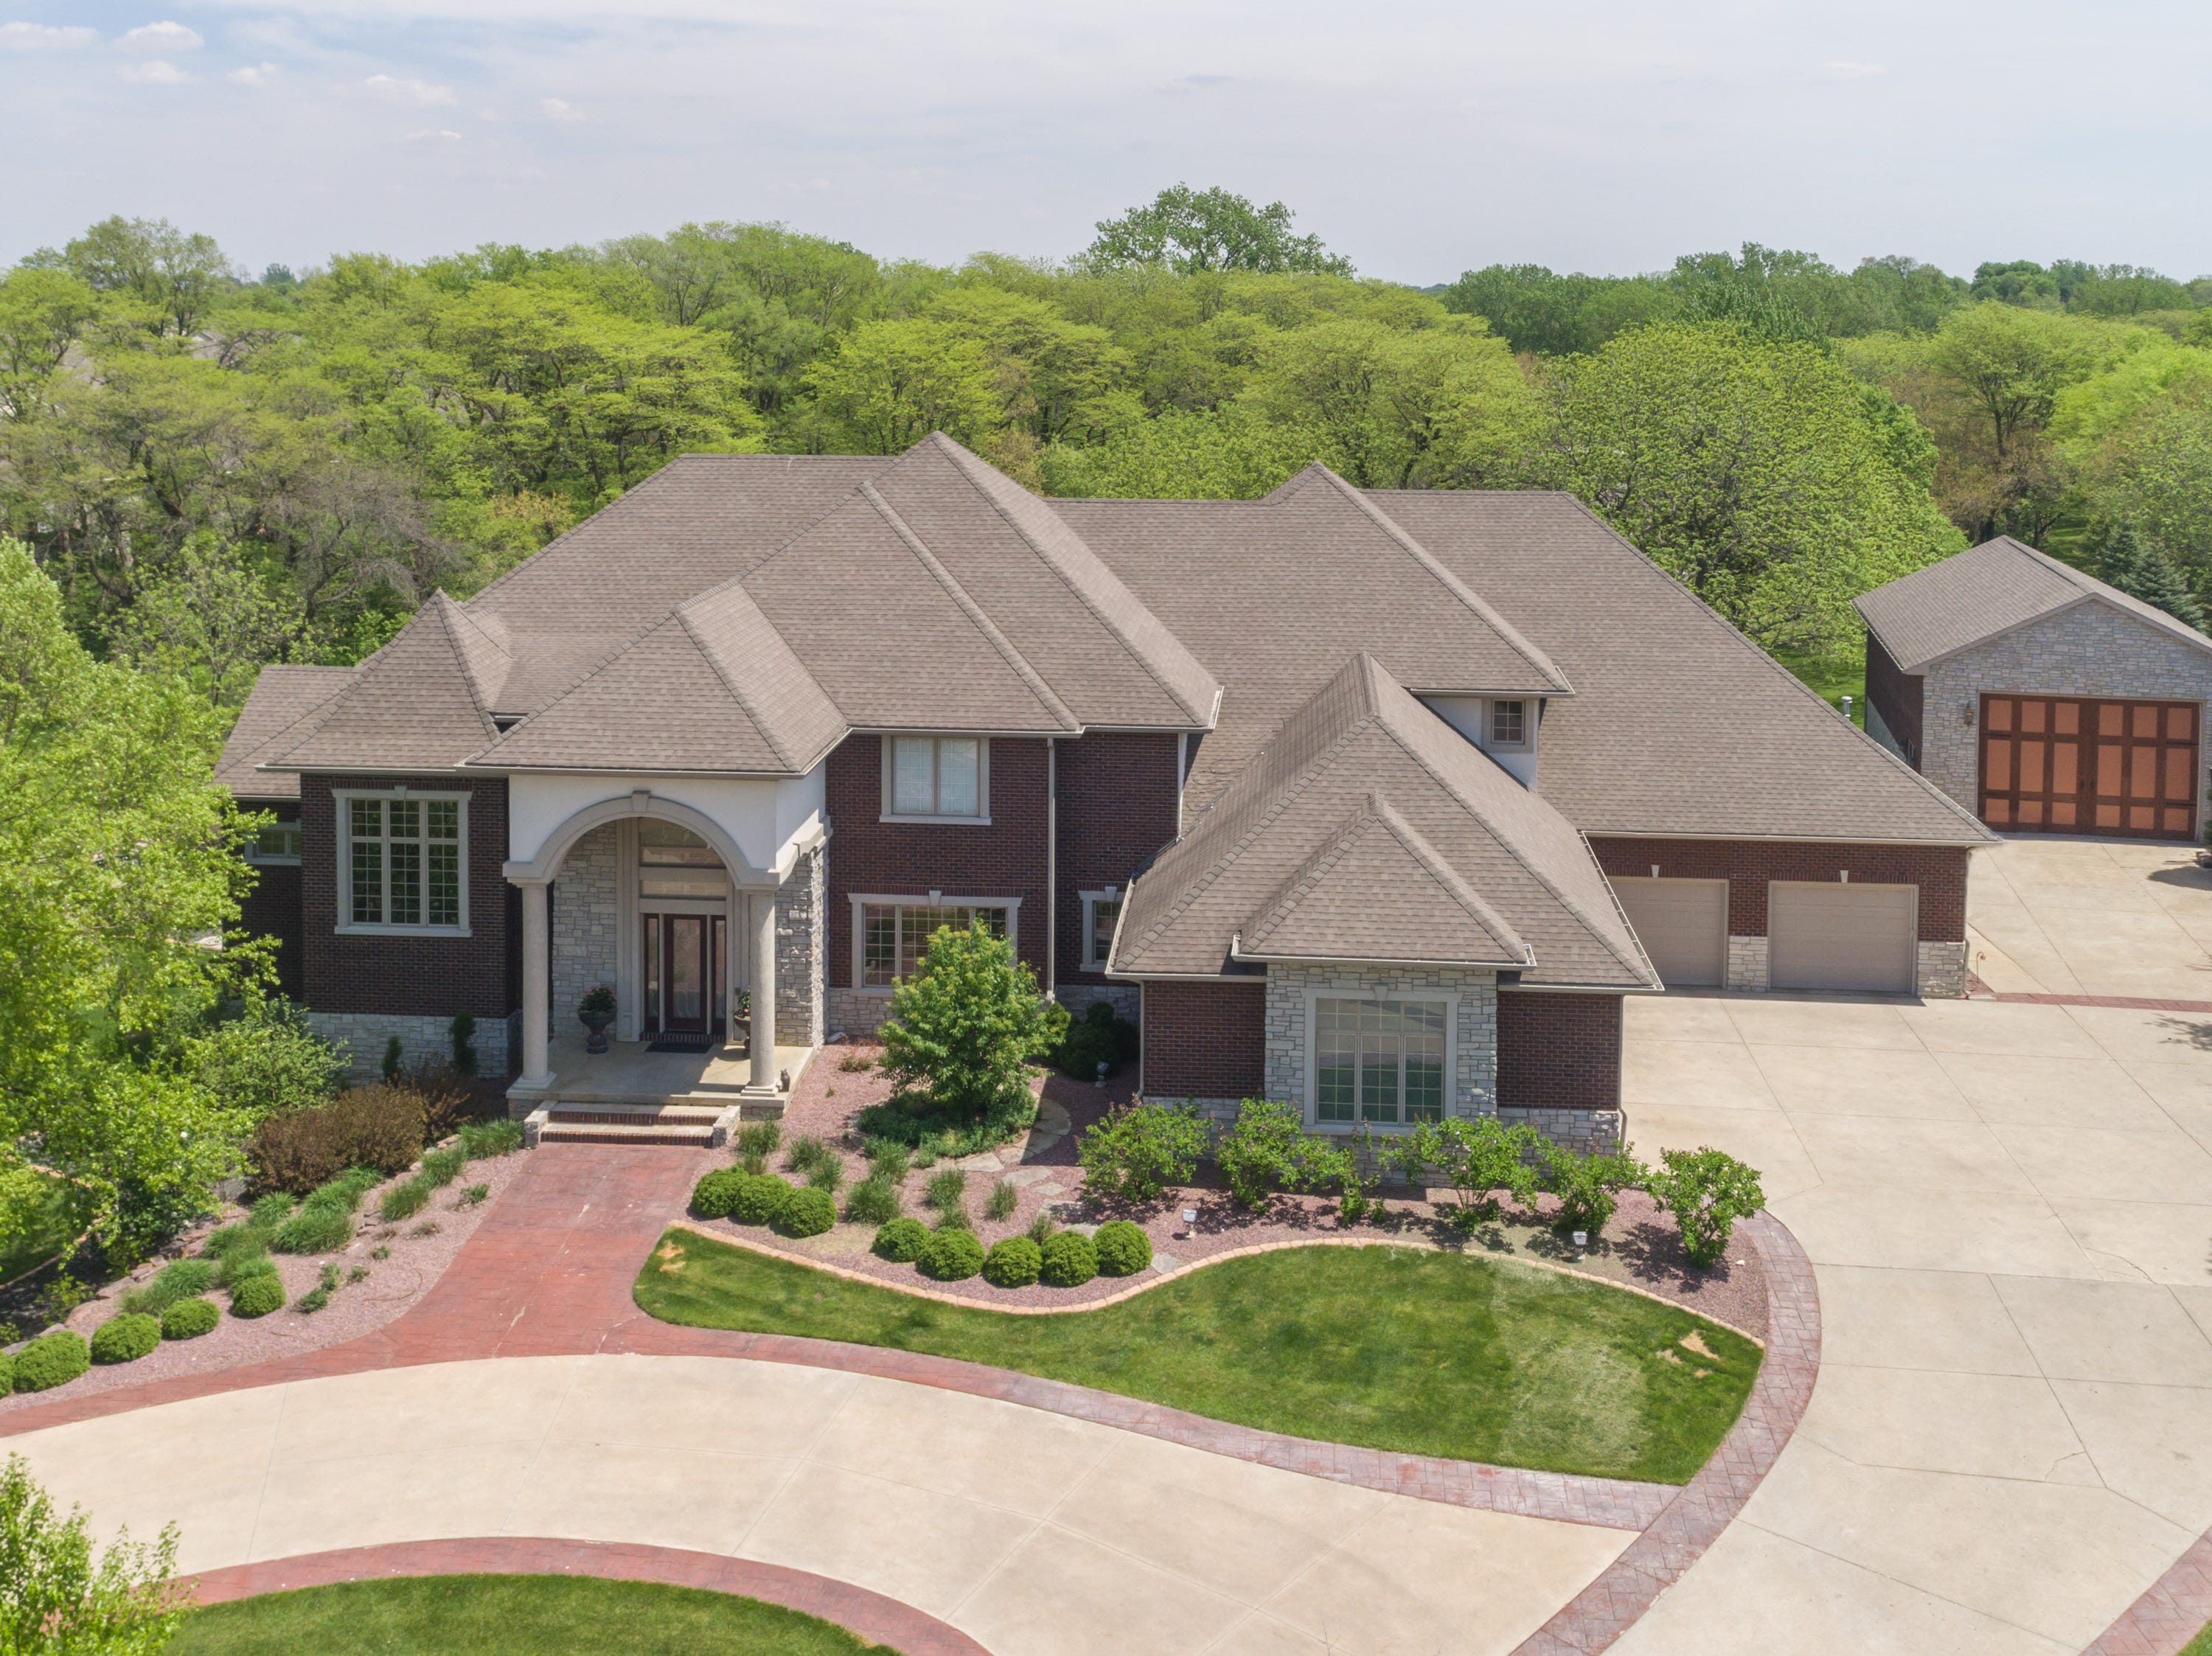 This home on Northeast Delaware Avenue in Ankeny sold for $1.05 million in 2018. It has a five-car heated garage, swimming pool, indoor basketball court and eight bathrooms.